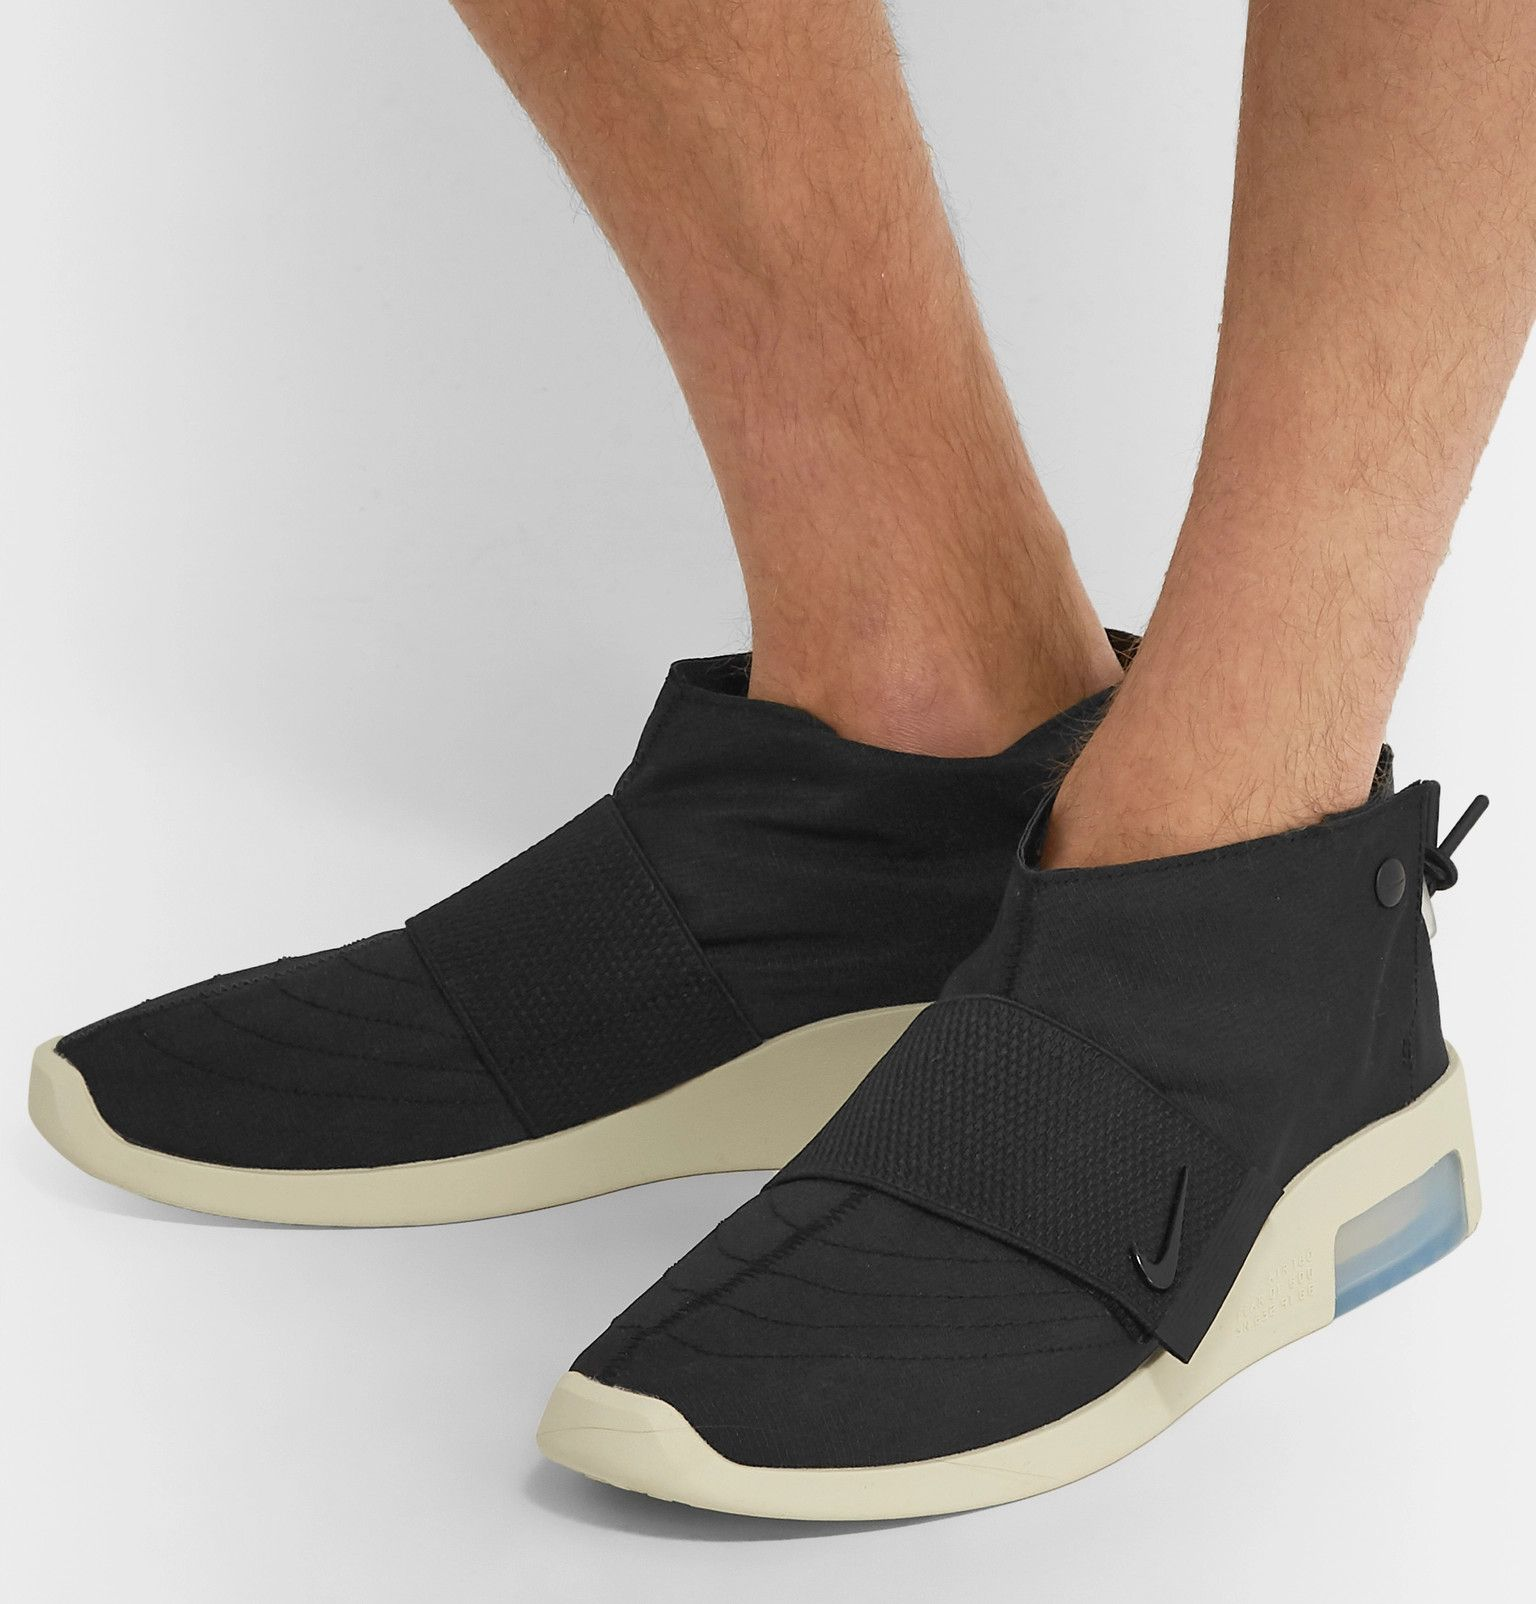 Sneakers, Classic shoes, Shoe style